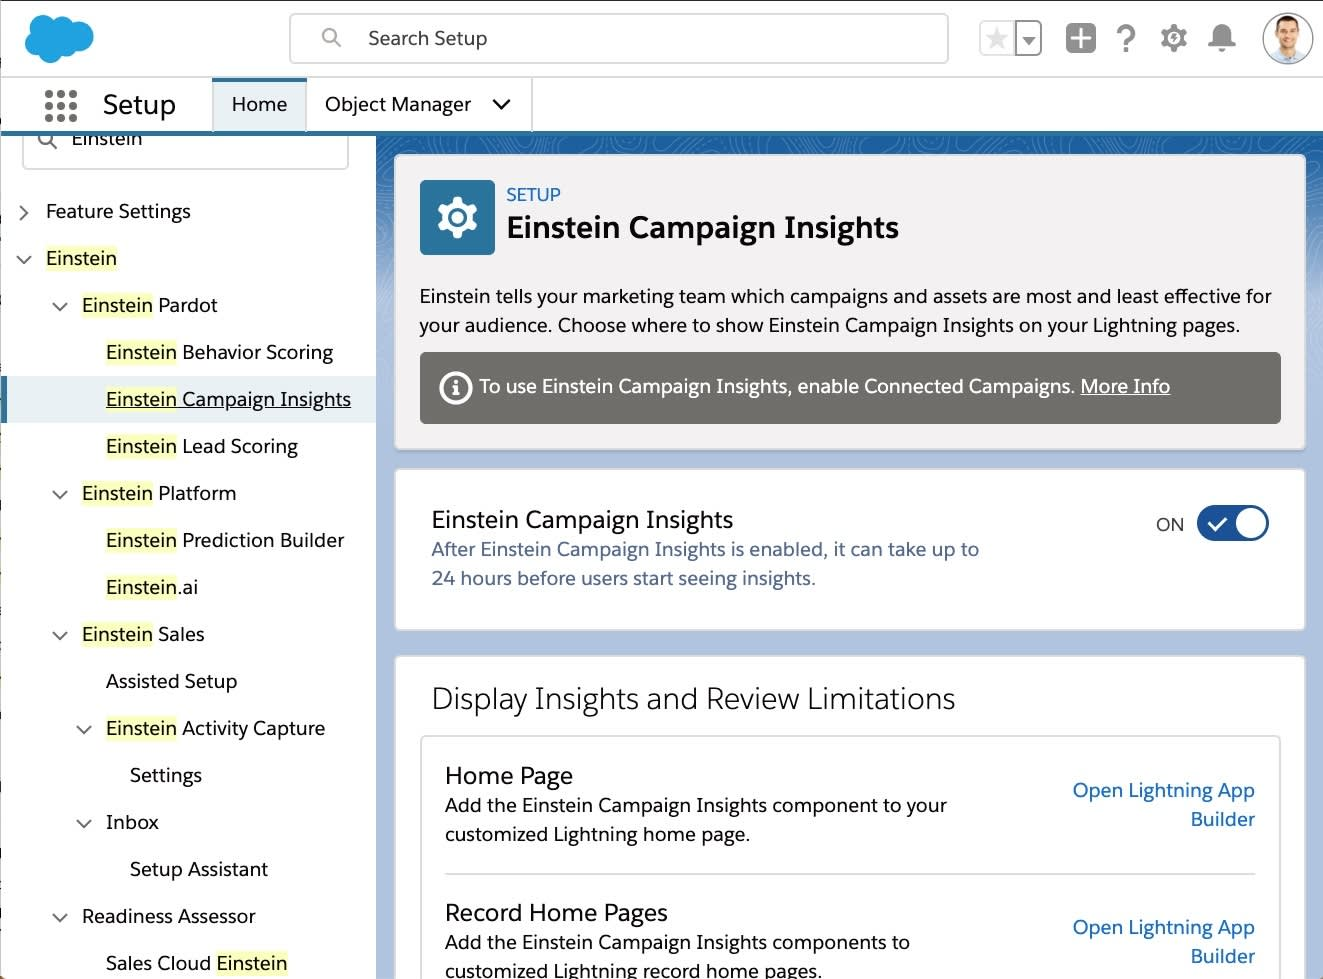 Einstein Campaign Insights enabled in the Setup menu.